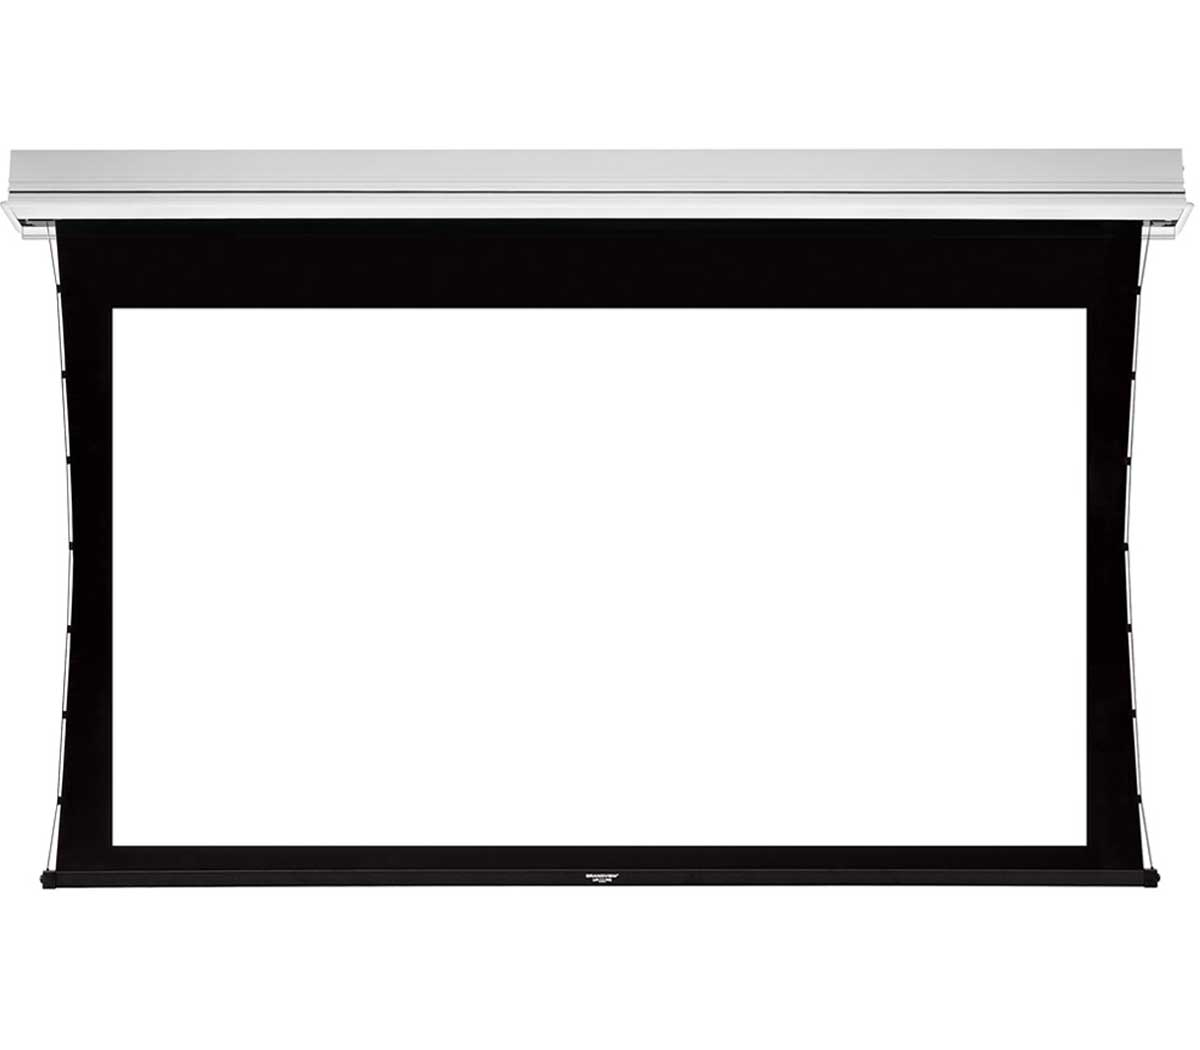 Grandview 16:9 Inceiling Tab Tensioned Screen